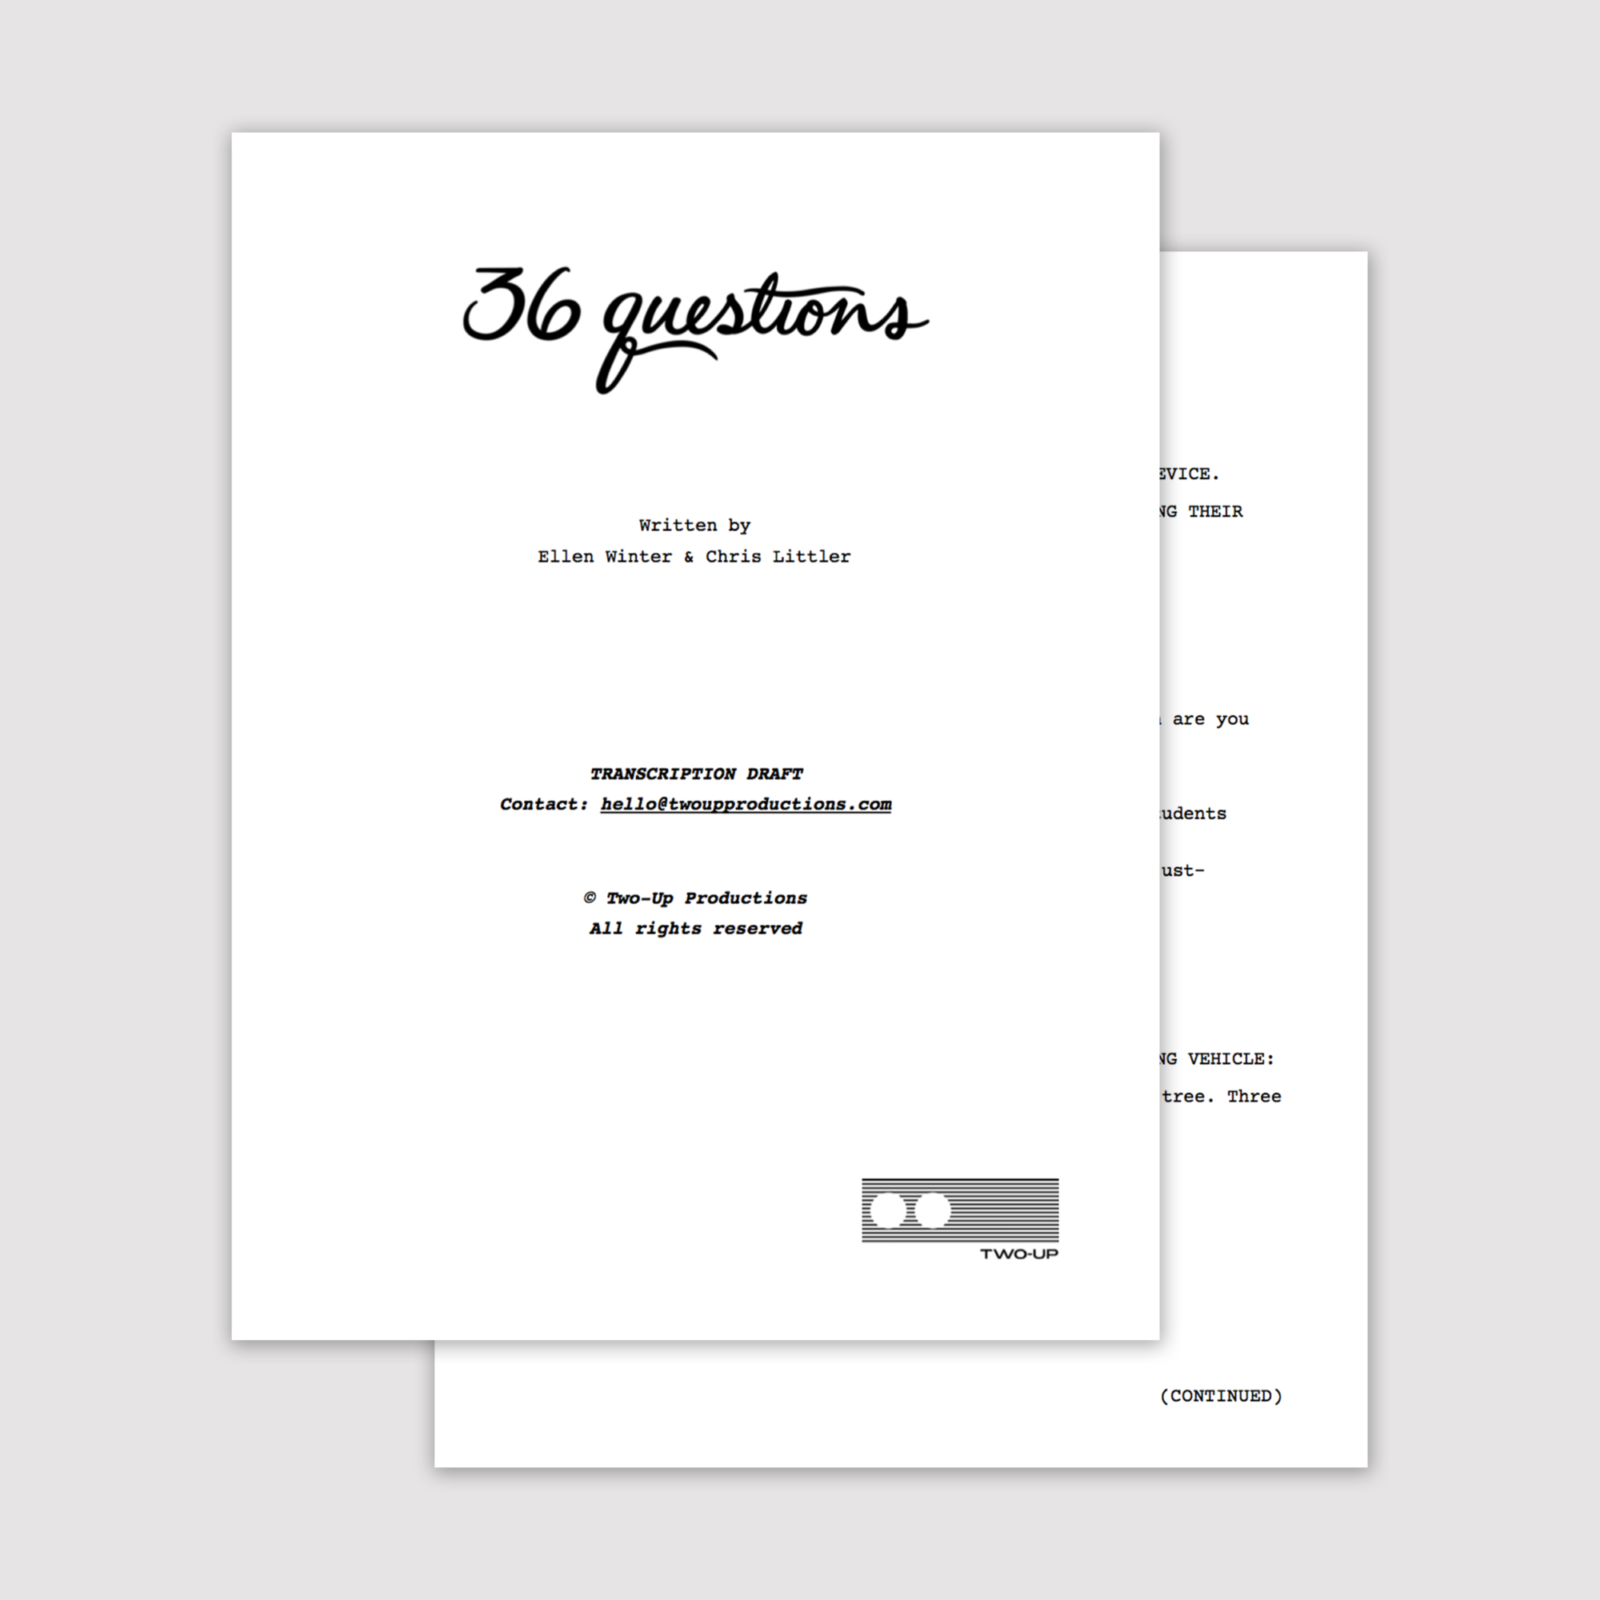 36 Questions Transcription website